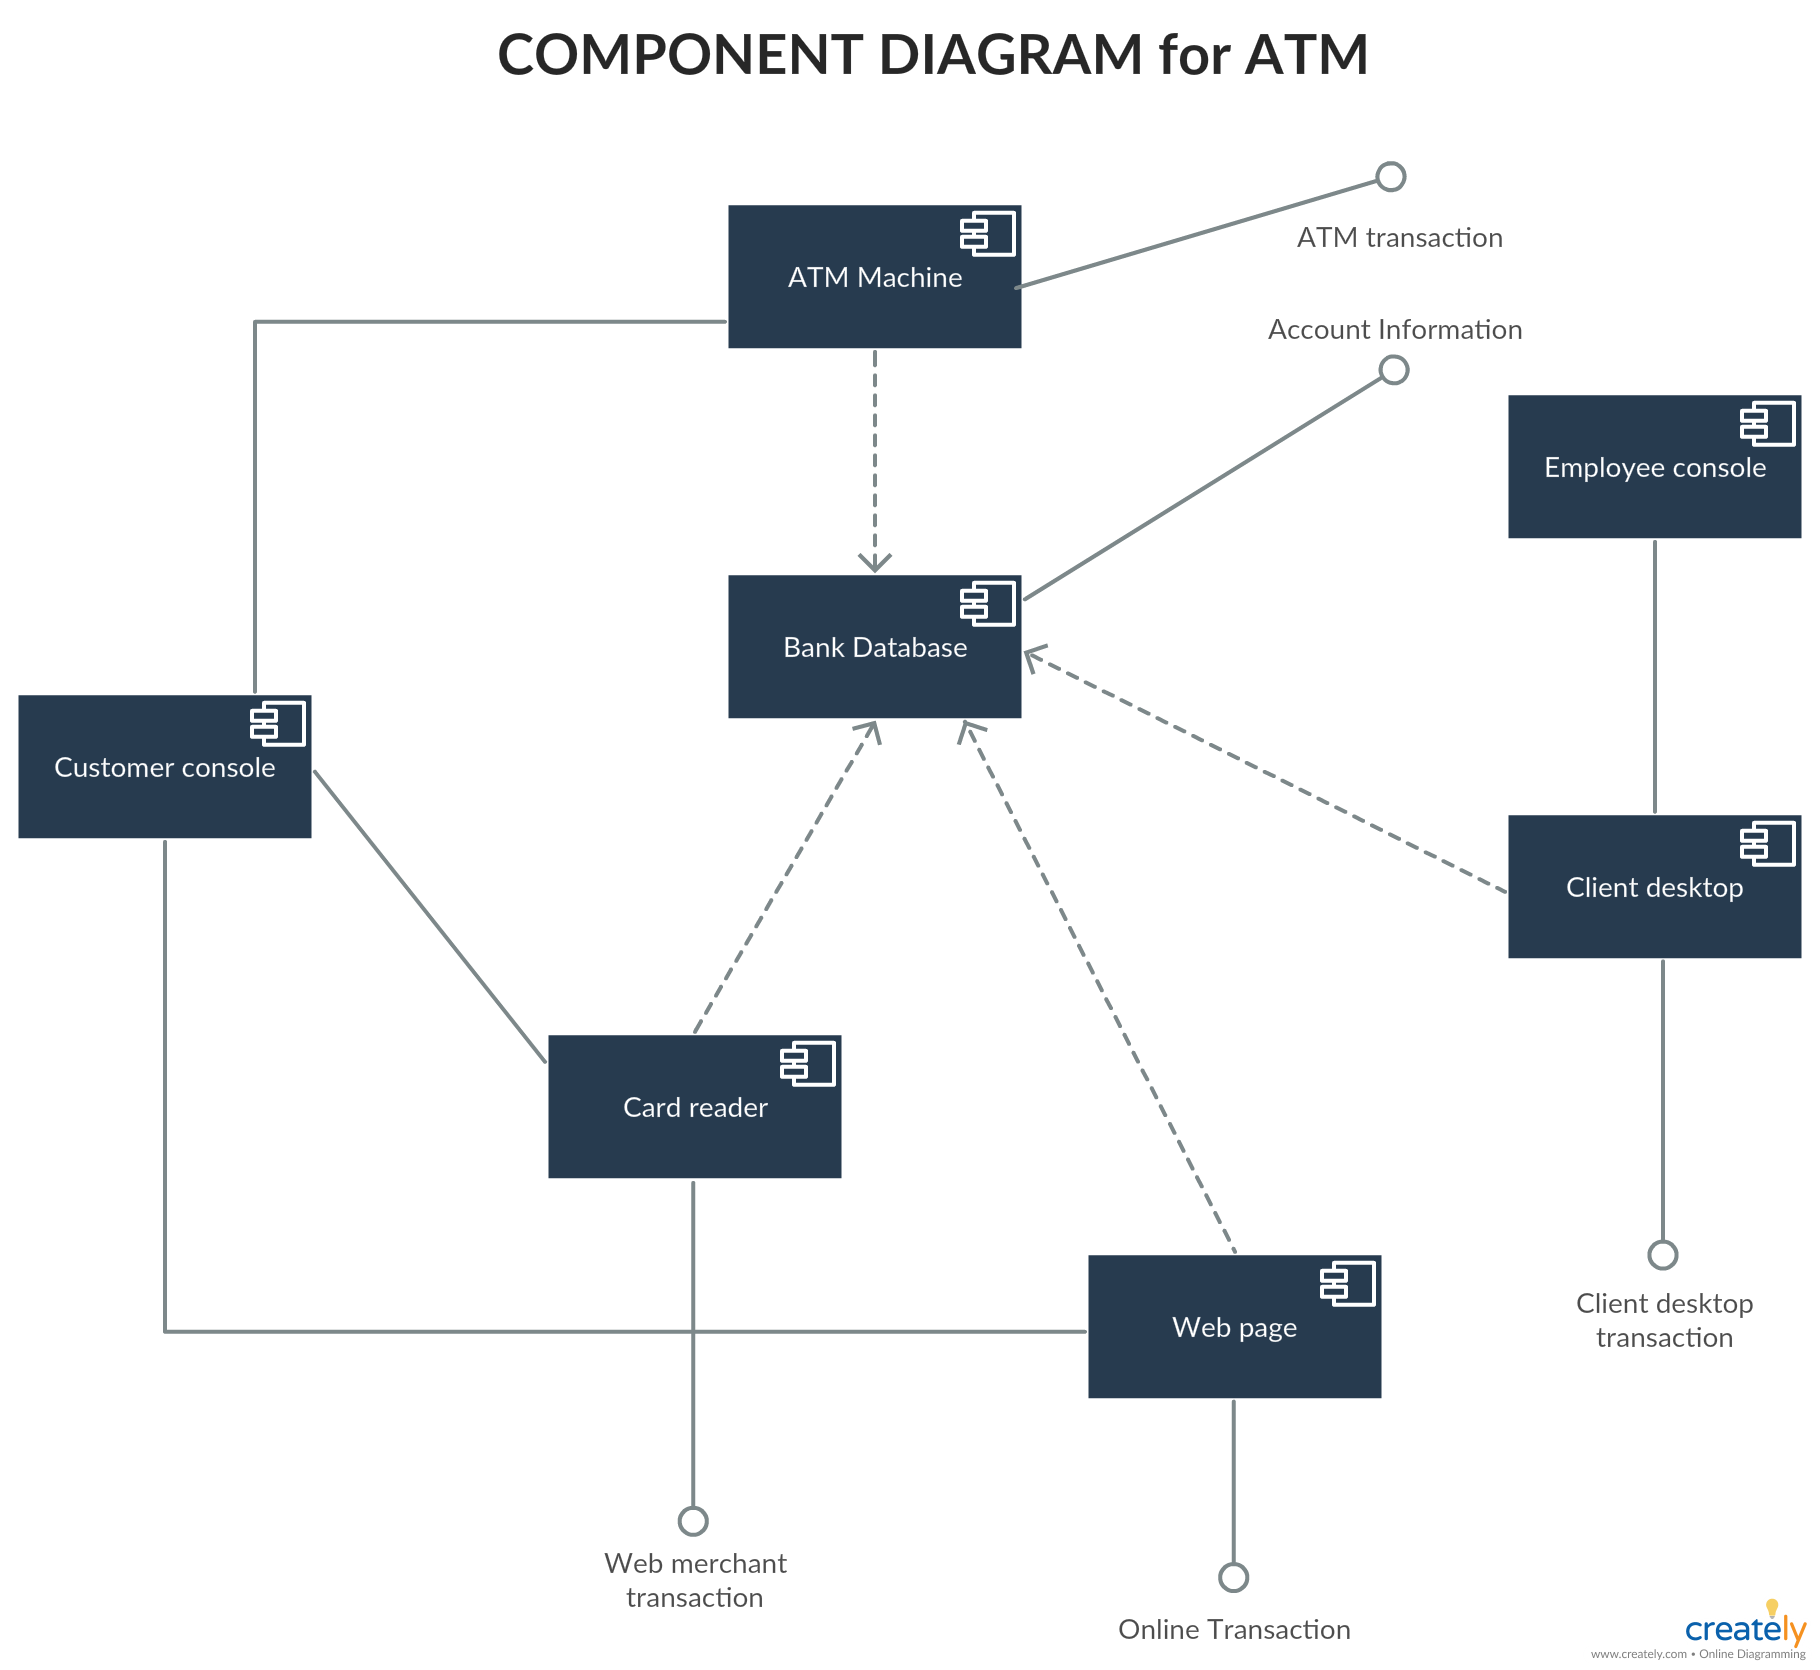 visio uml component diagram suzuki eiger 400 wiring for atm you can edit this template and create your own creately diagrams be exported added to word ppt powerpoint